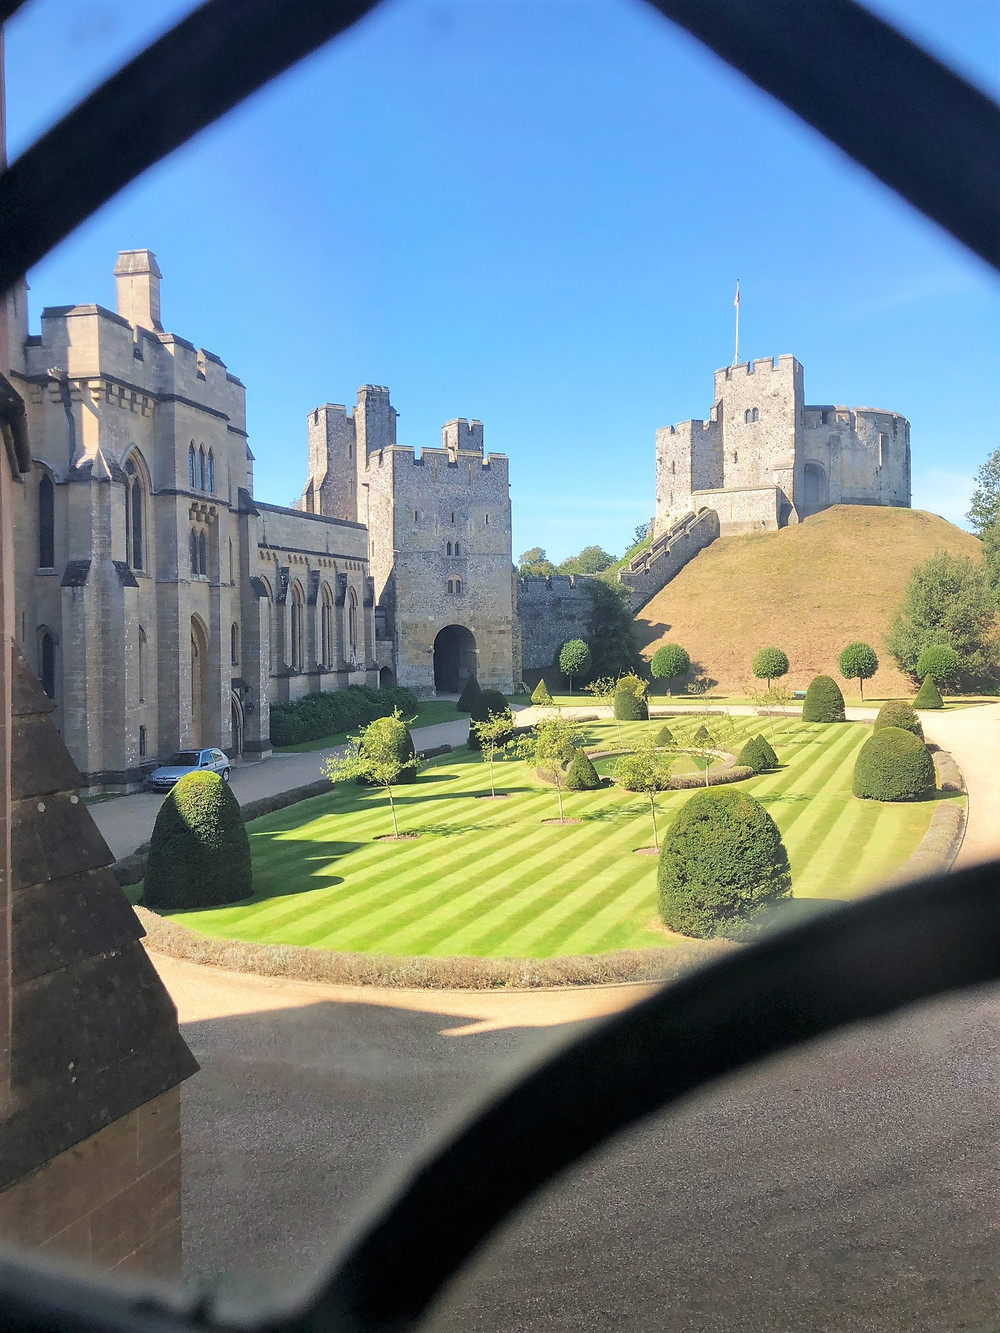 Commanding view of the Keep from the Arundel Castle complex